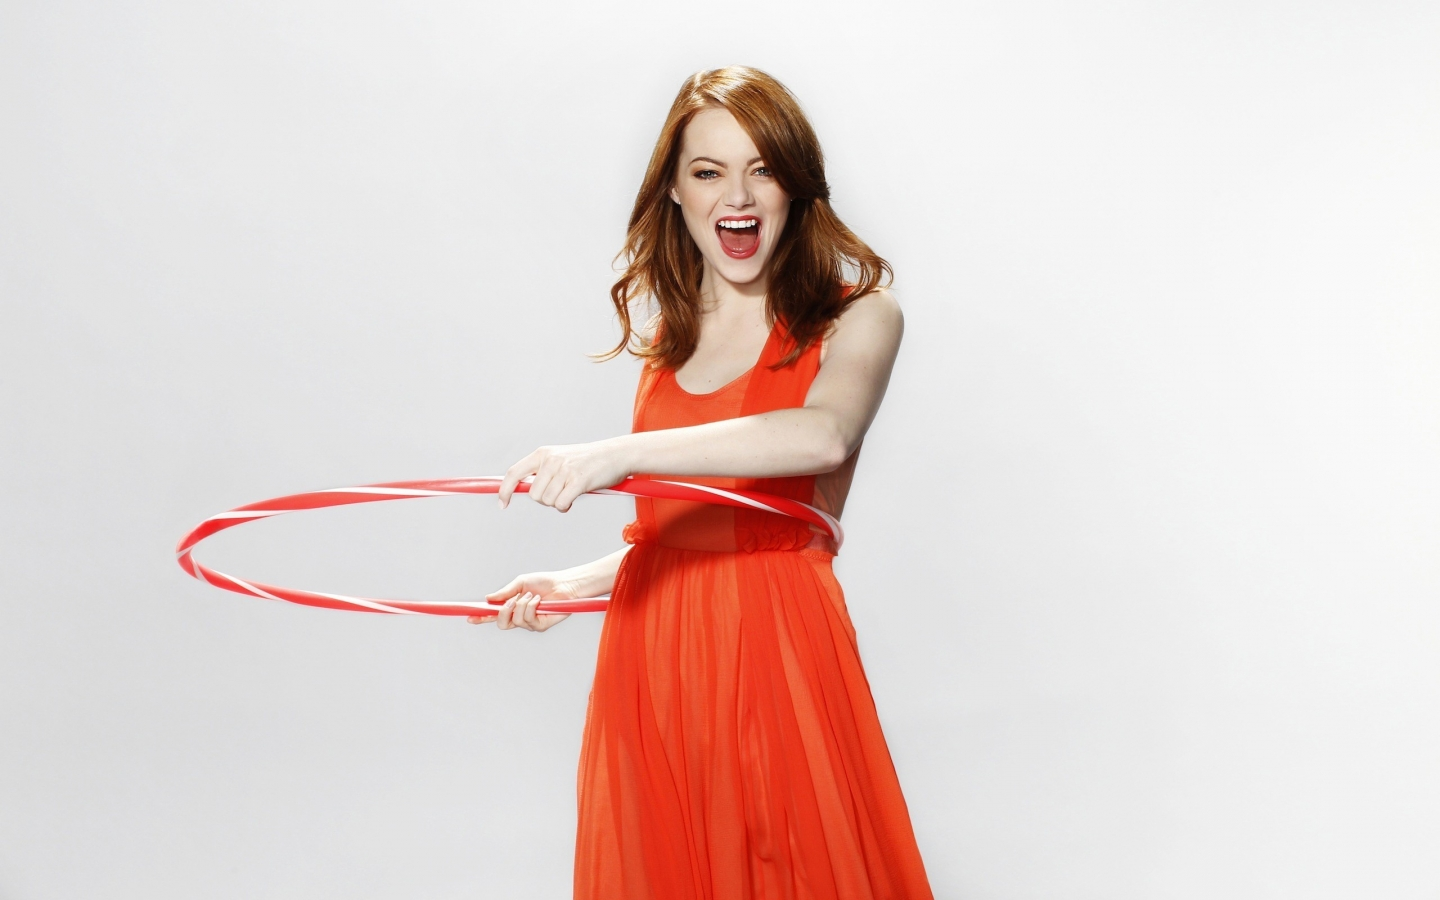 Happy Emma Stone for 1440 x 900 widescreen resolution